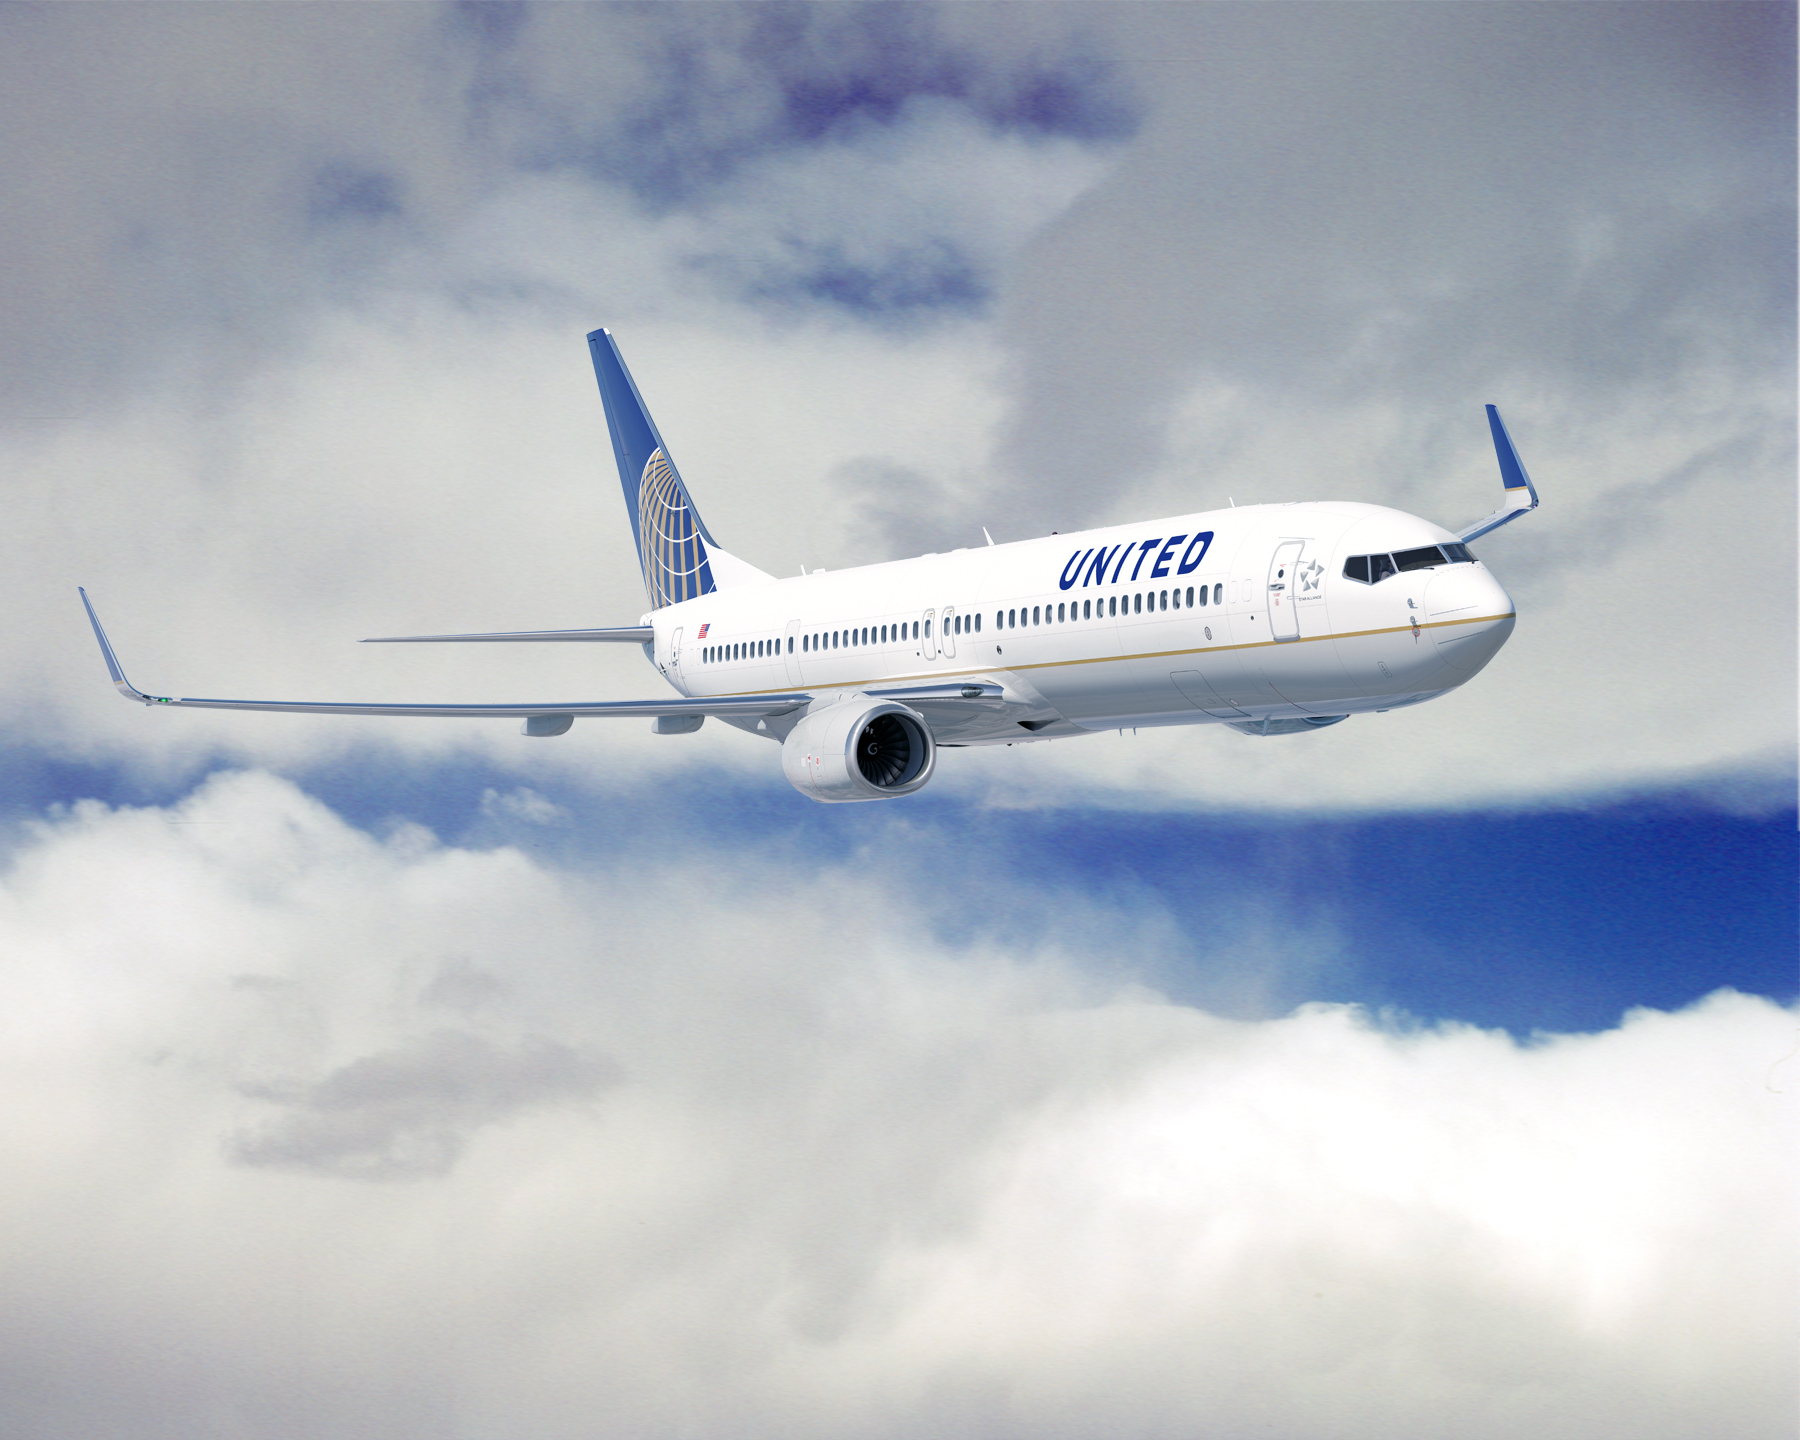 Avião United Airlines